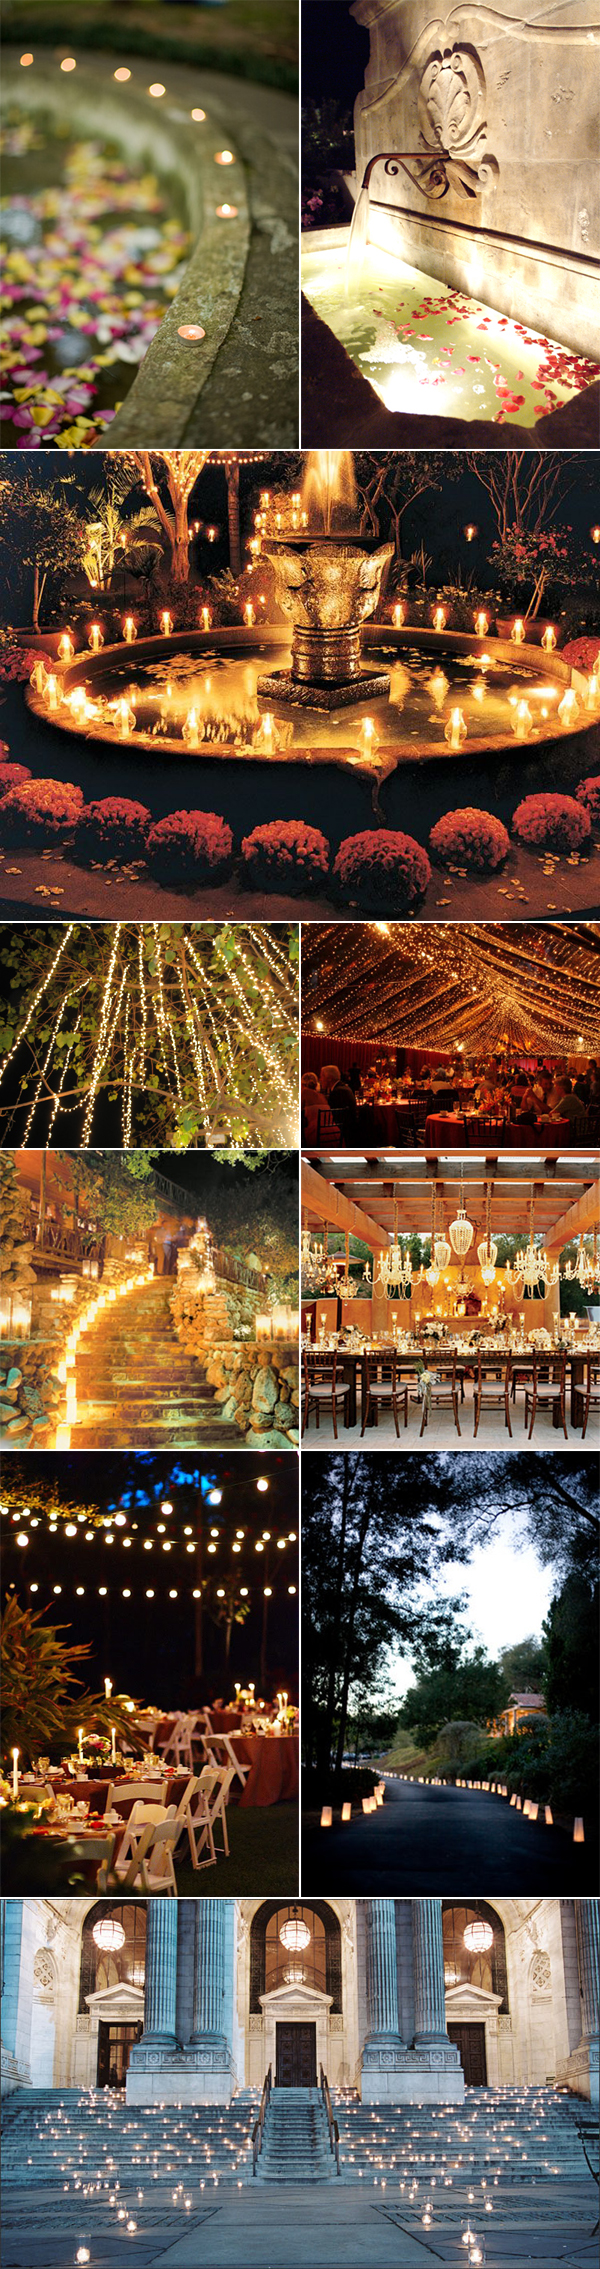 Lighting for your outdoor wedding reception venue pixel for Outdoor wedding reception lighting